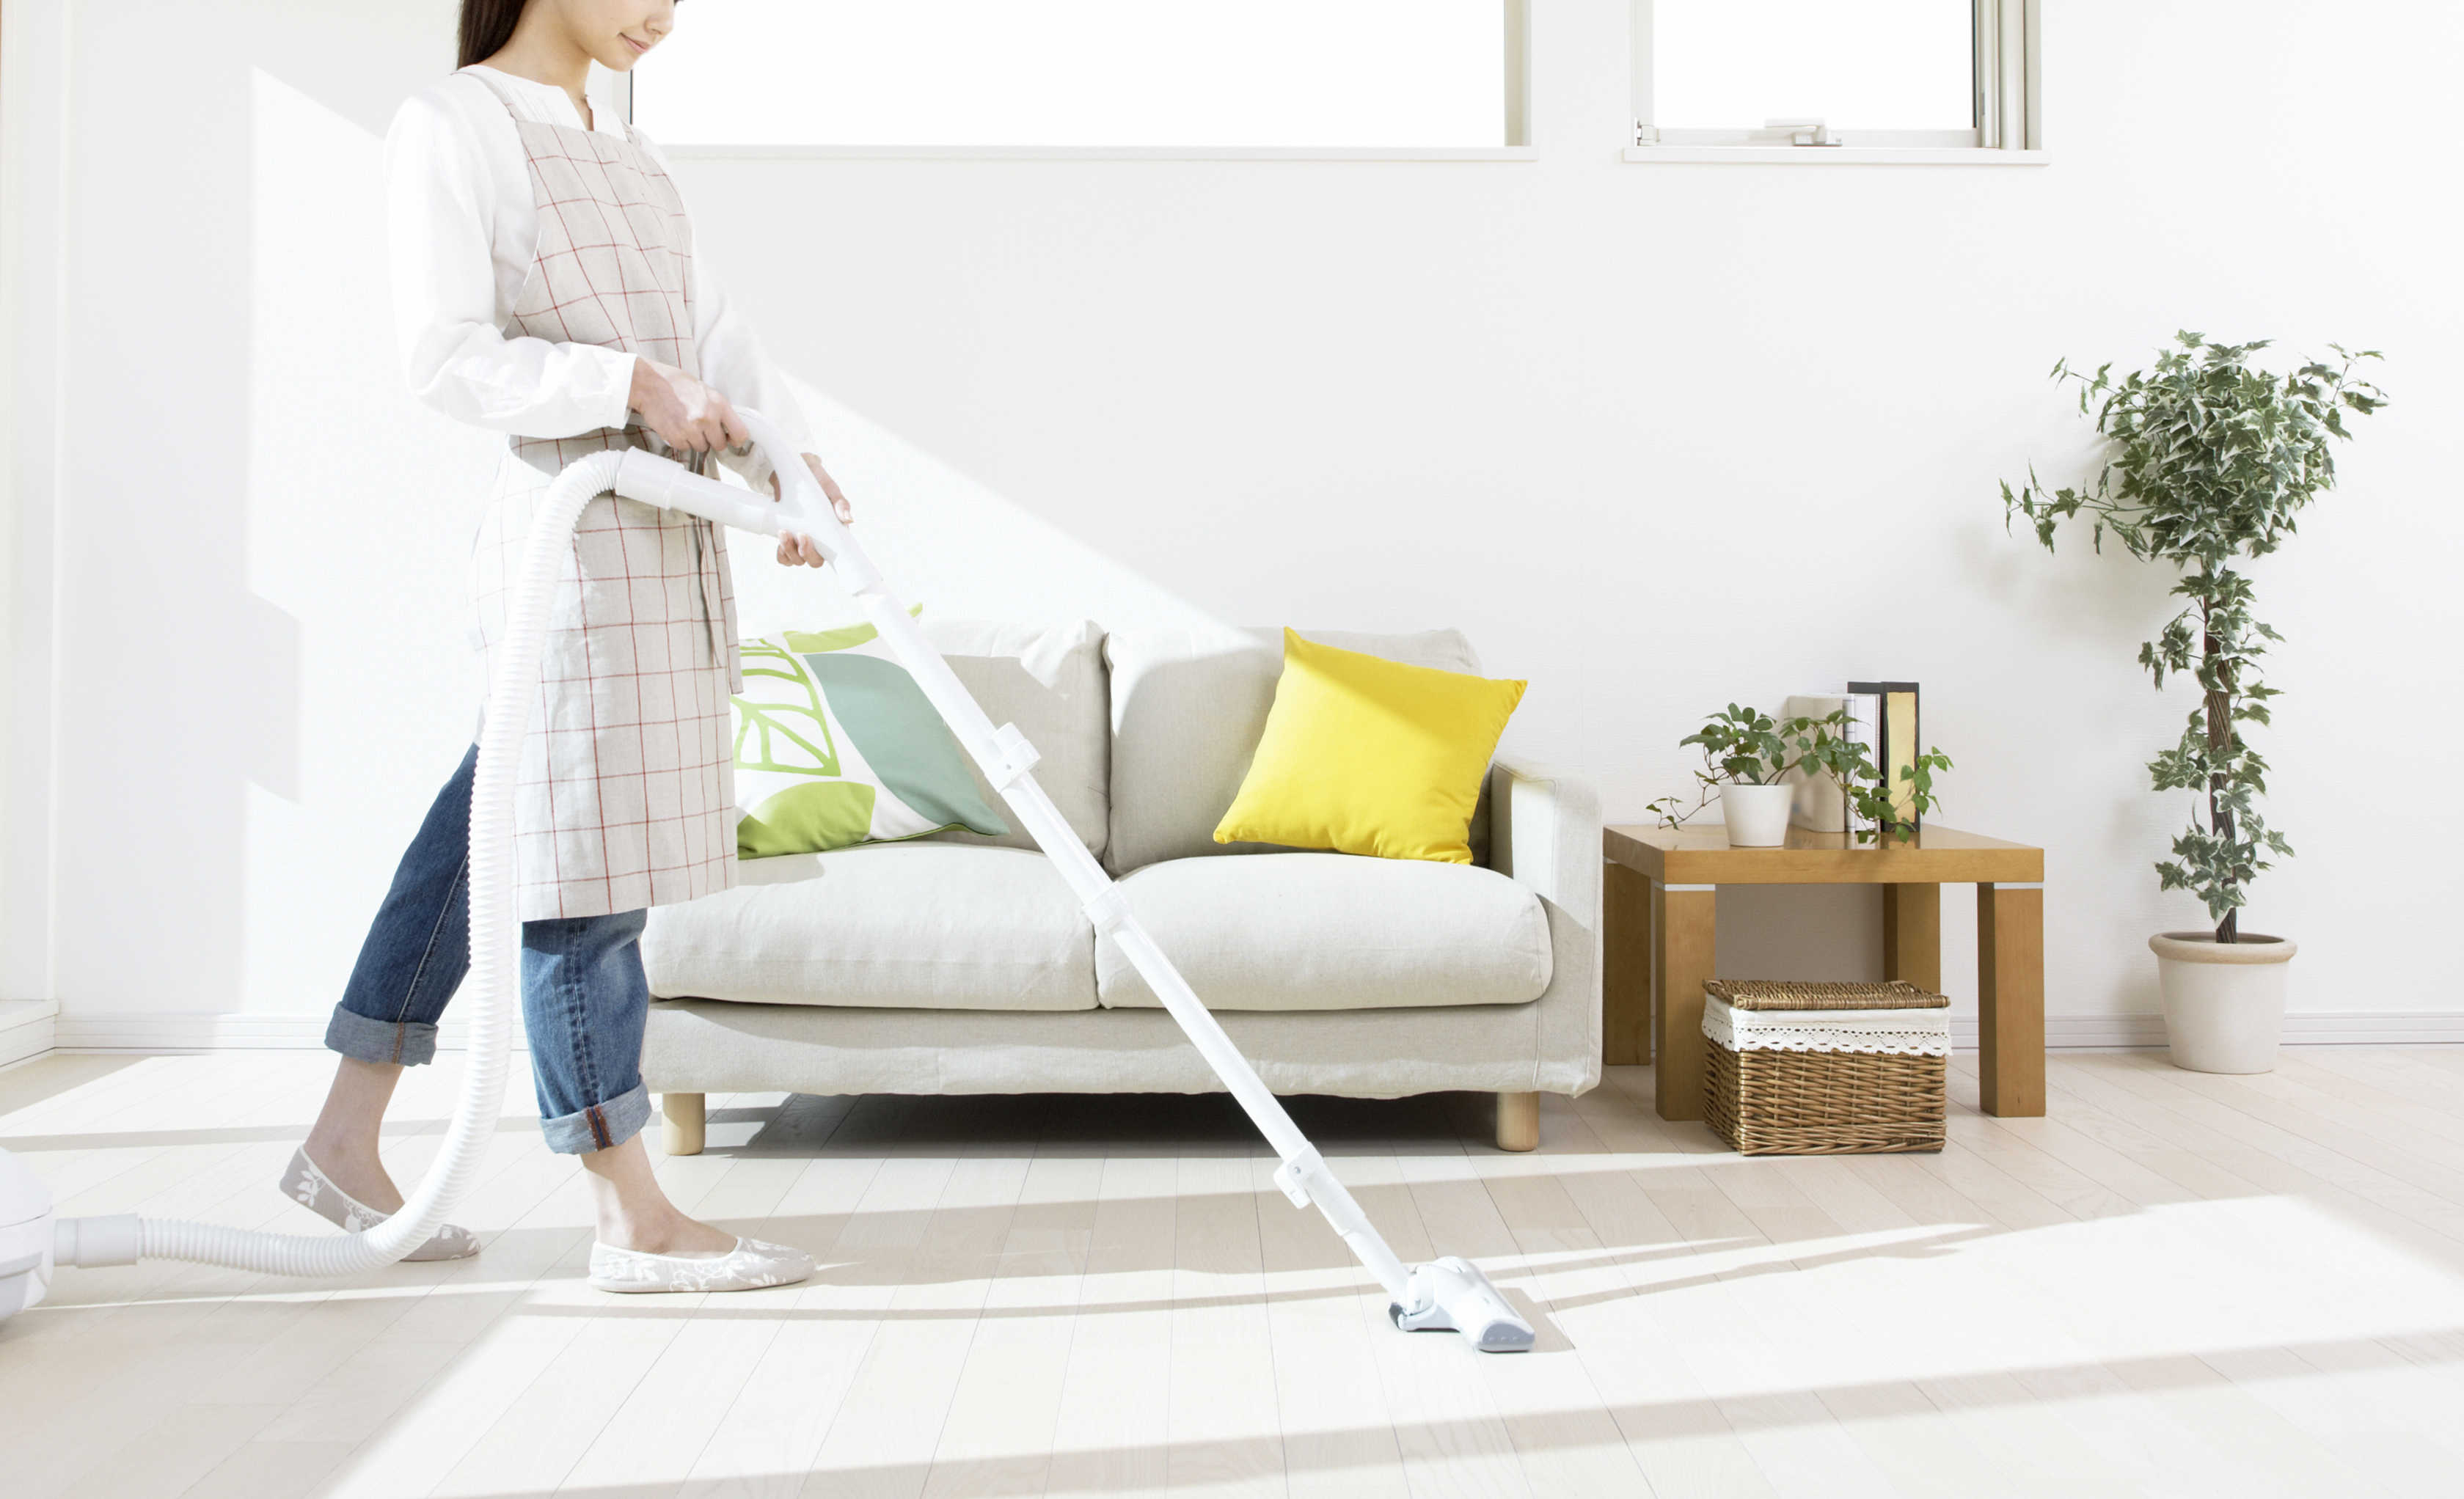 4-Simple-Ways-to-Make-Your-Home-Healthier 4 Simple Ways to Make Your Home Healthier